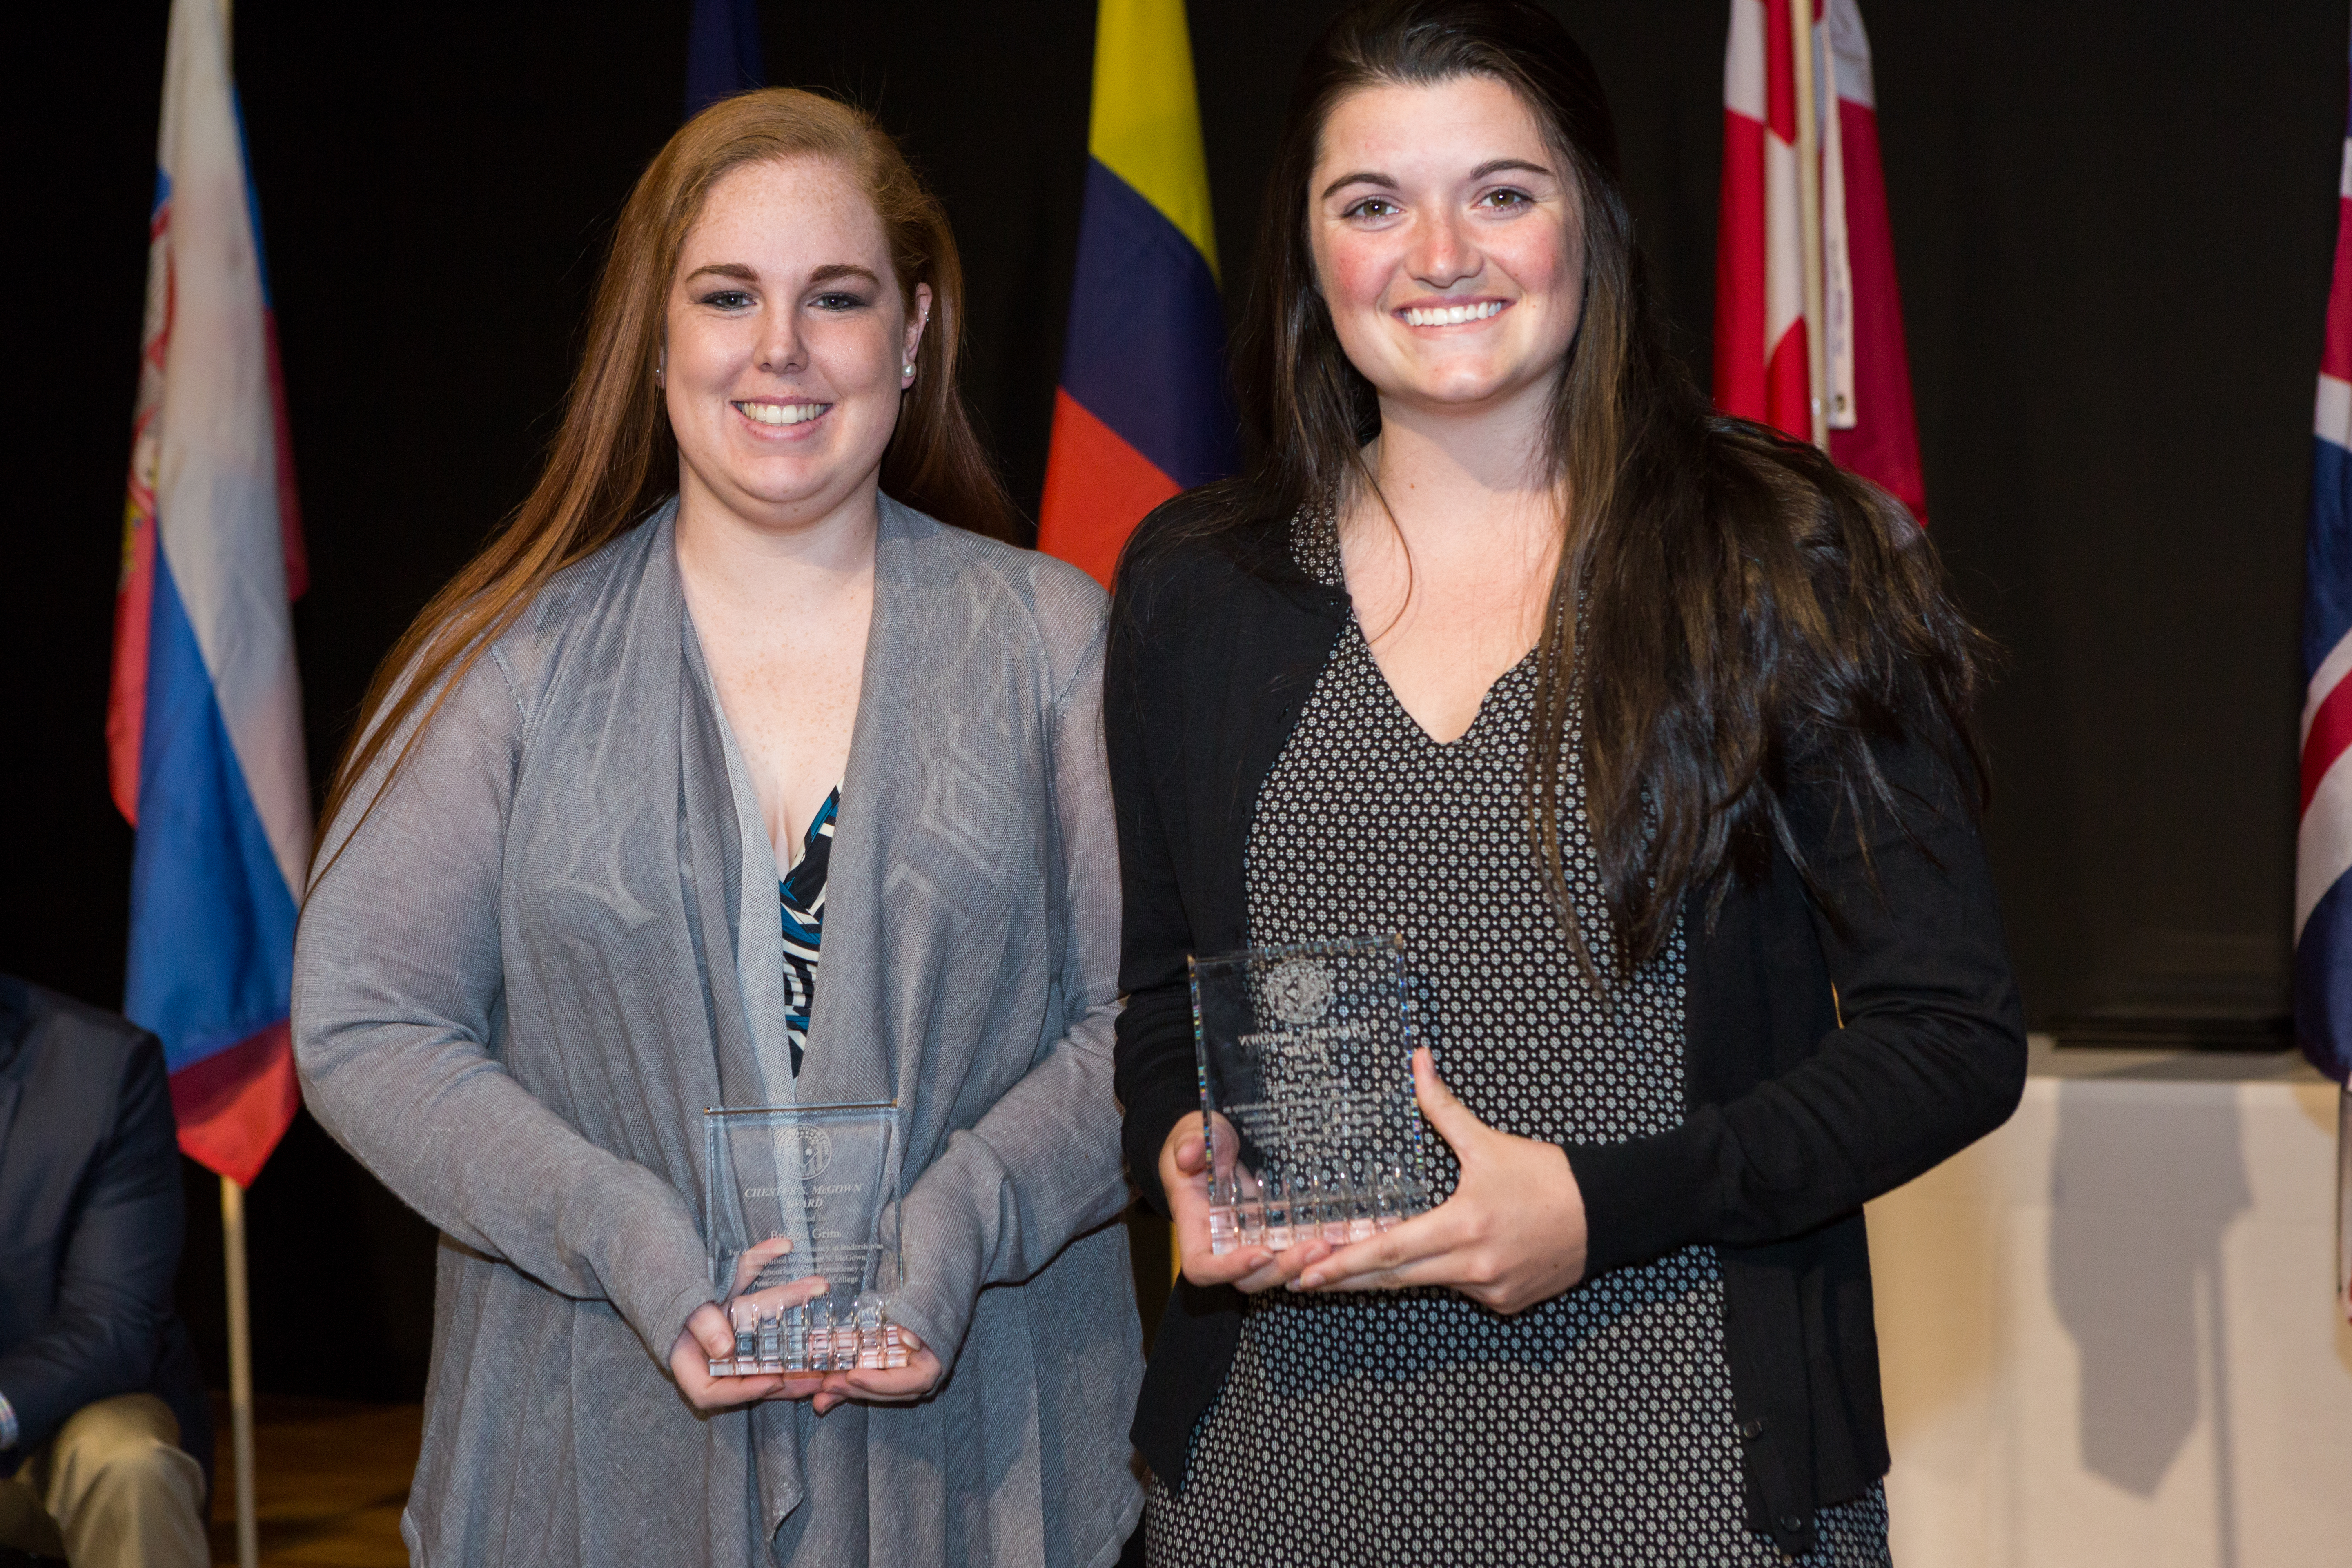 Bridget grim left and jessica lawler right co recipients of the chester s. mcgown award